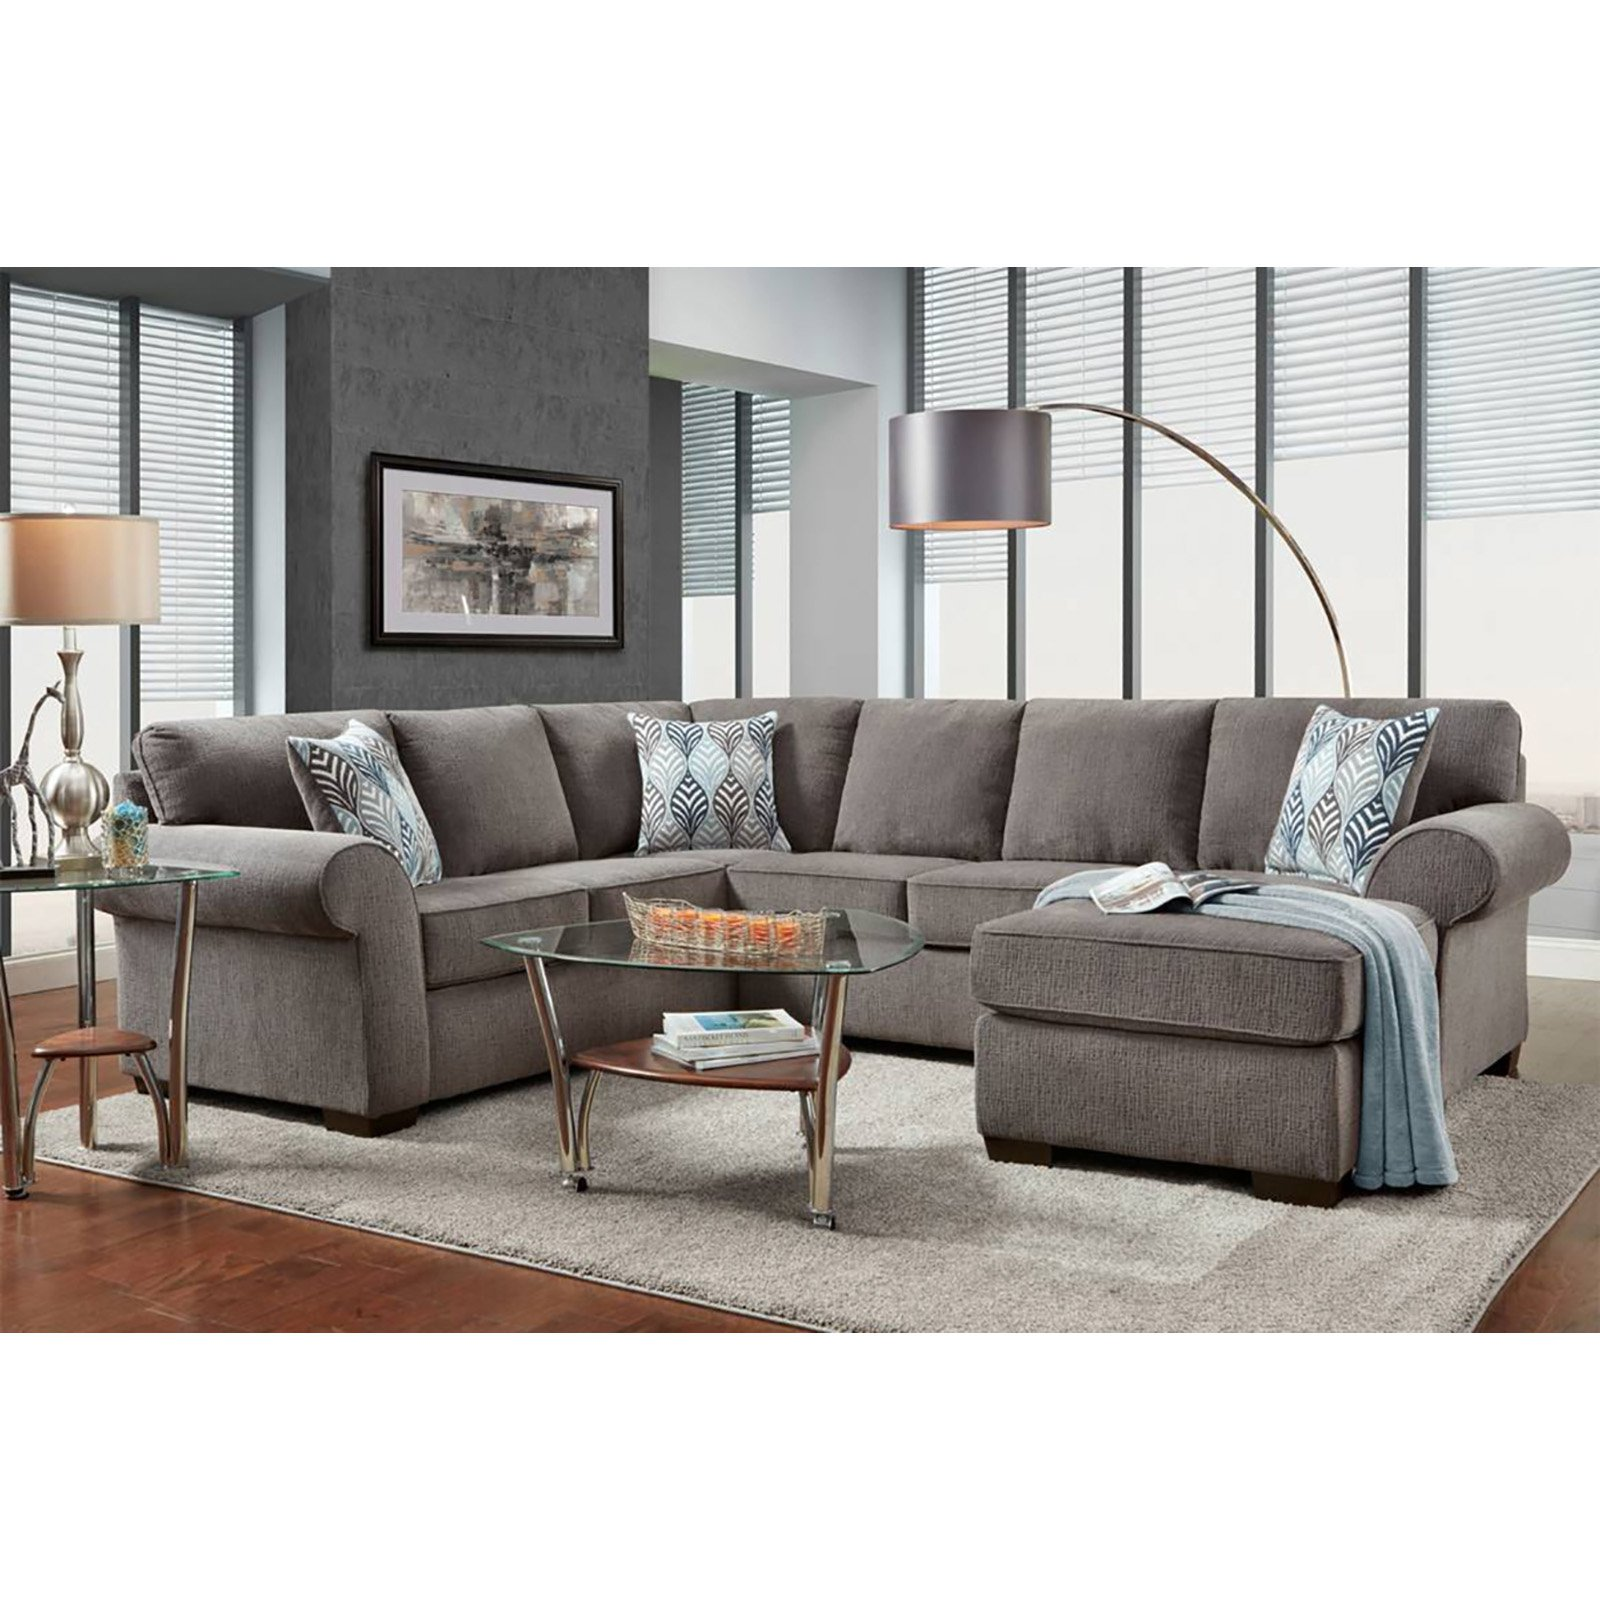 Chelsea Home Furniture Roosevelt 2 Piece Sofa with Chaise Sectional